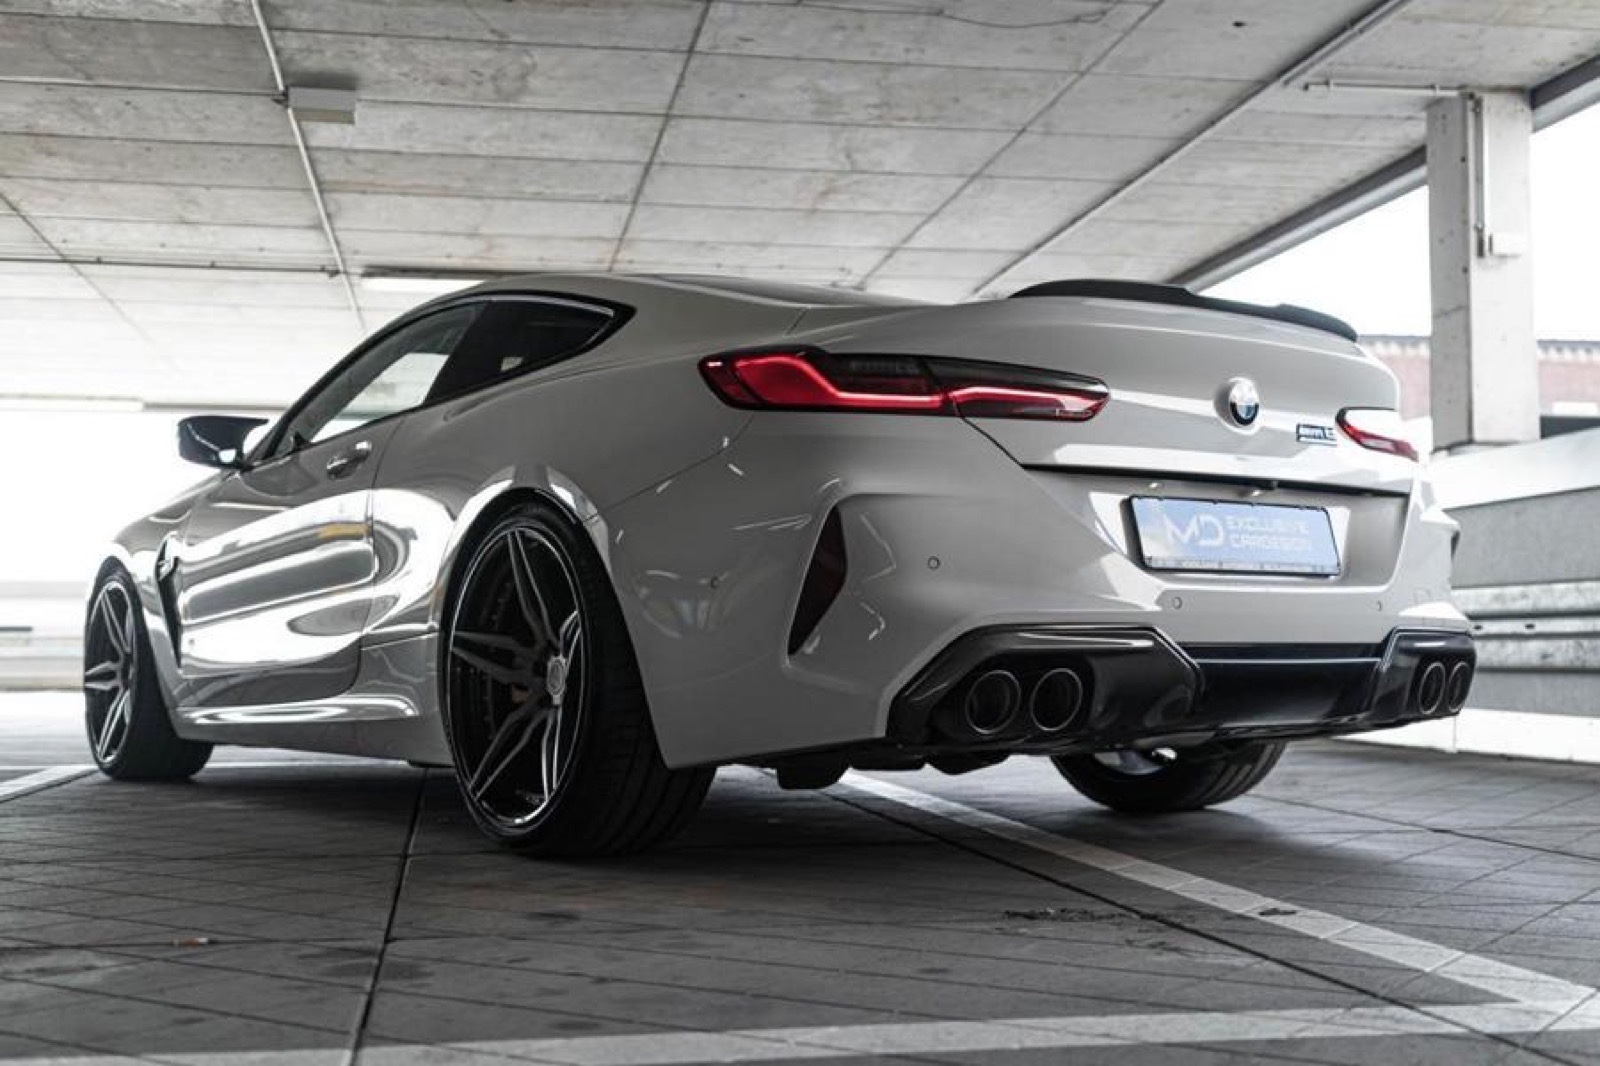 BMW_M8_MD_Exclusive_Cardesign-0000